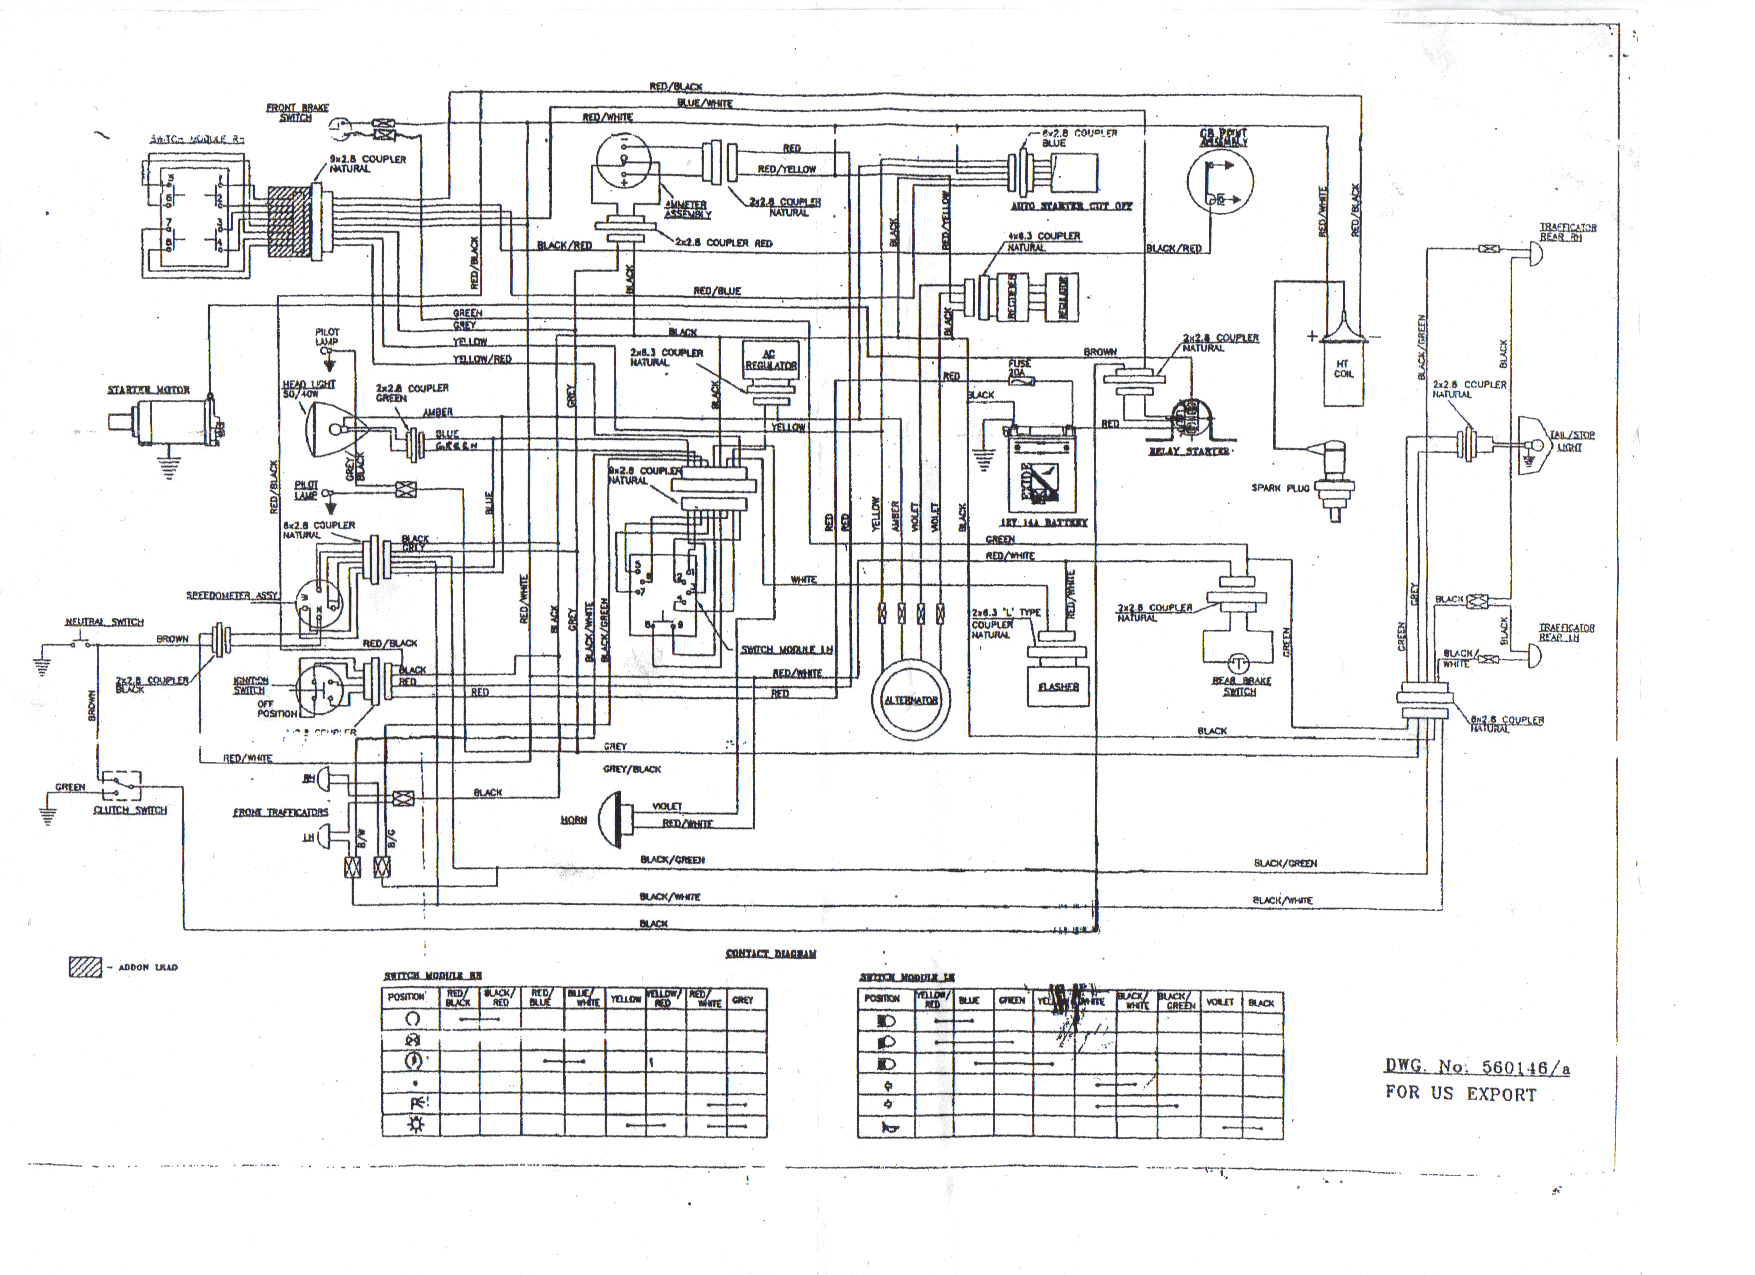 1956 Indian Royal Enfield Wiring Diagram - Atwood Water Heater Wiring  Harness for Wiring Diagram SchematicsWiring Diagram Schematics